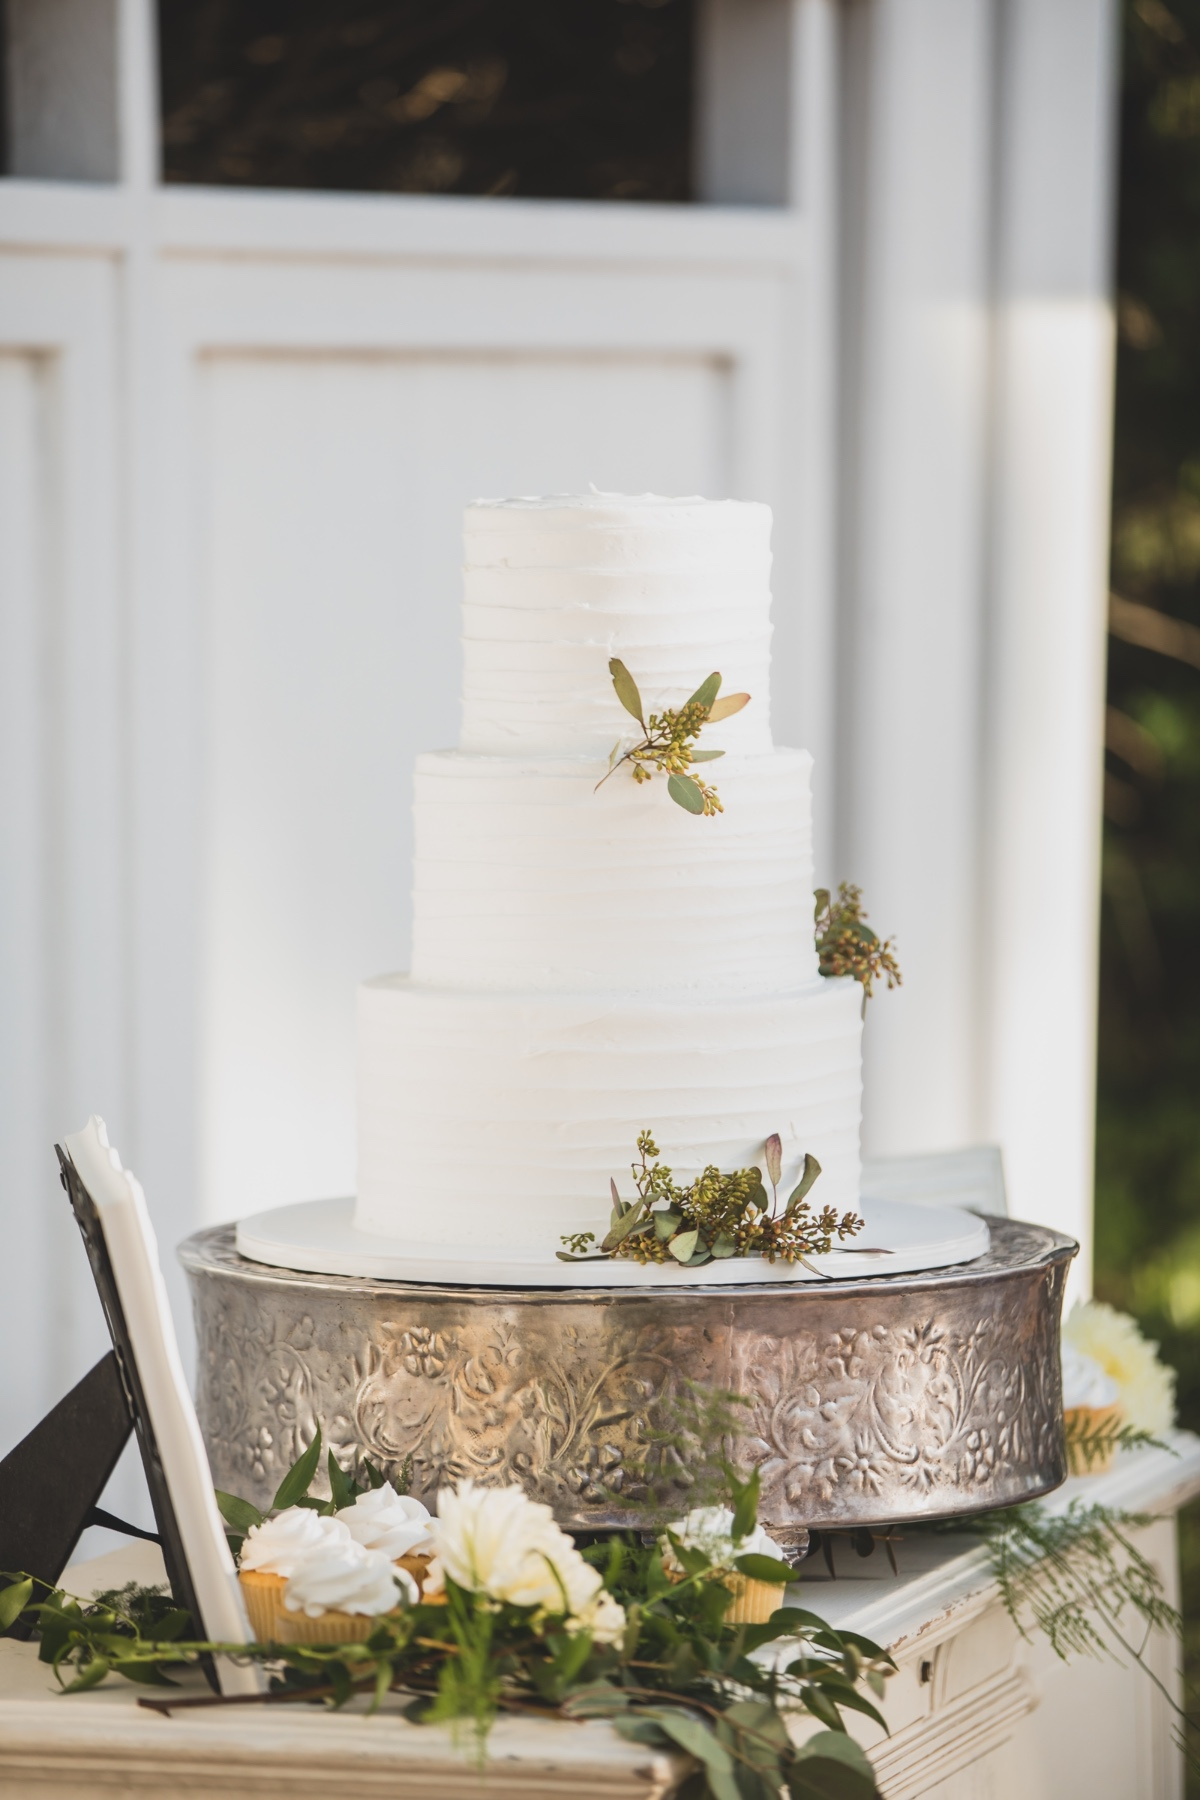 Simple buttercream wedding cake with seeded eucalyptus